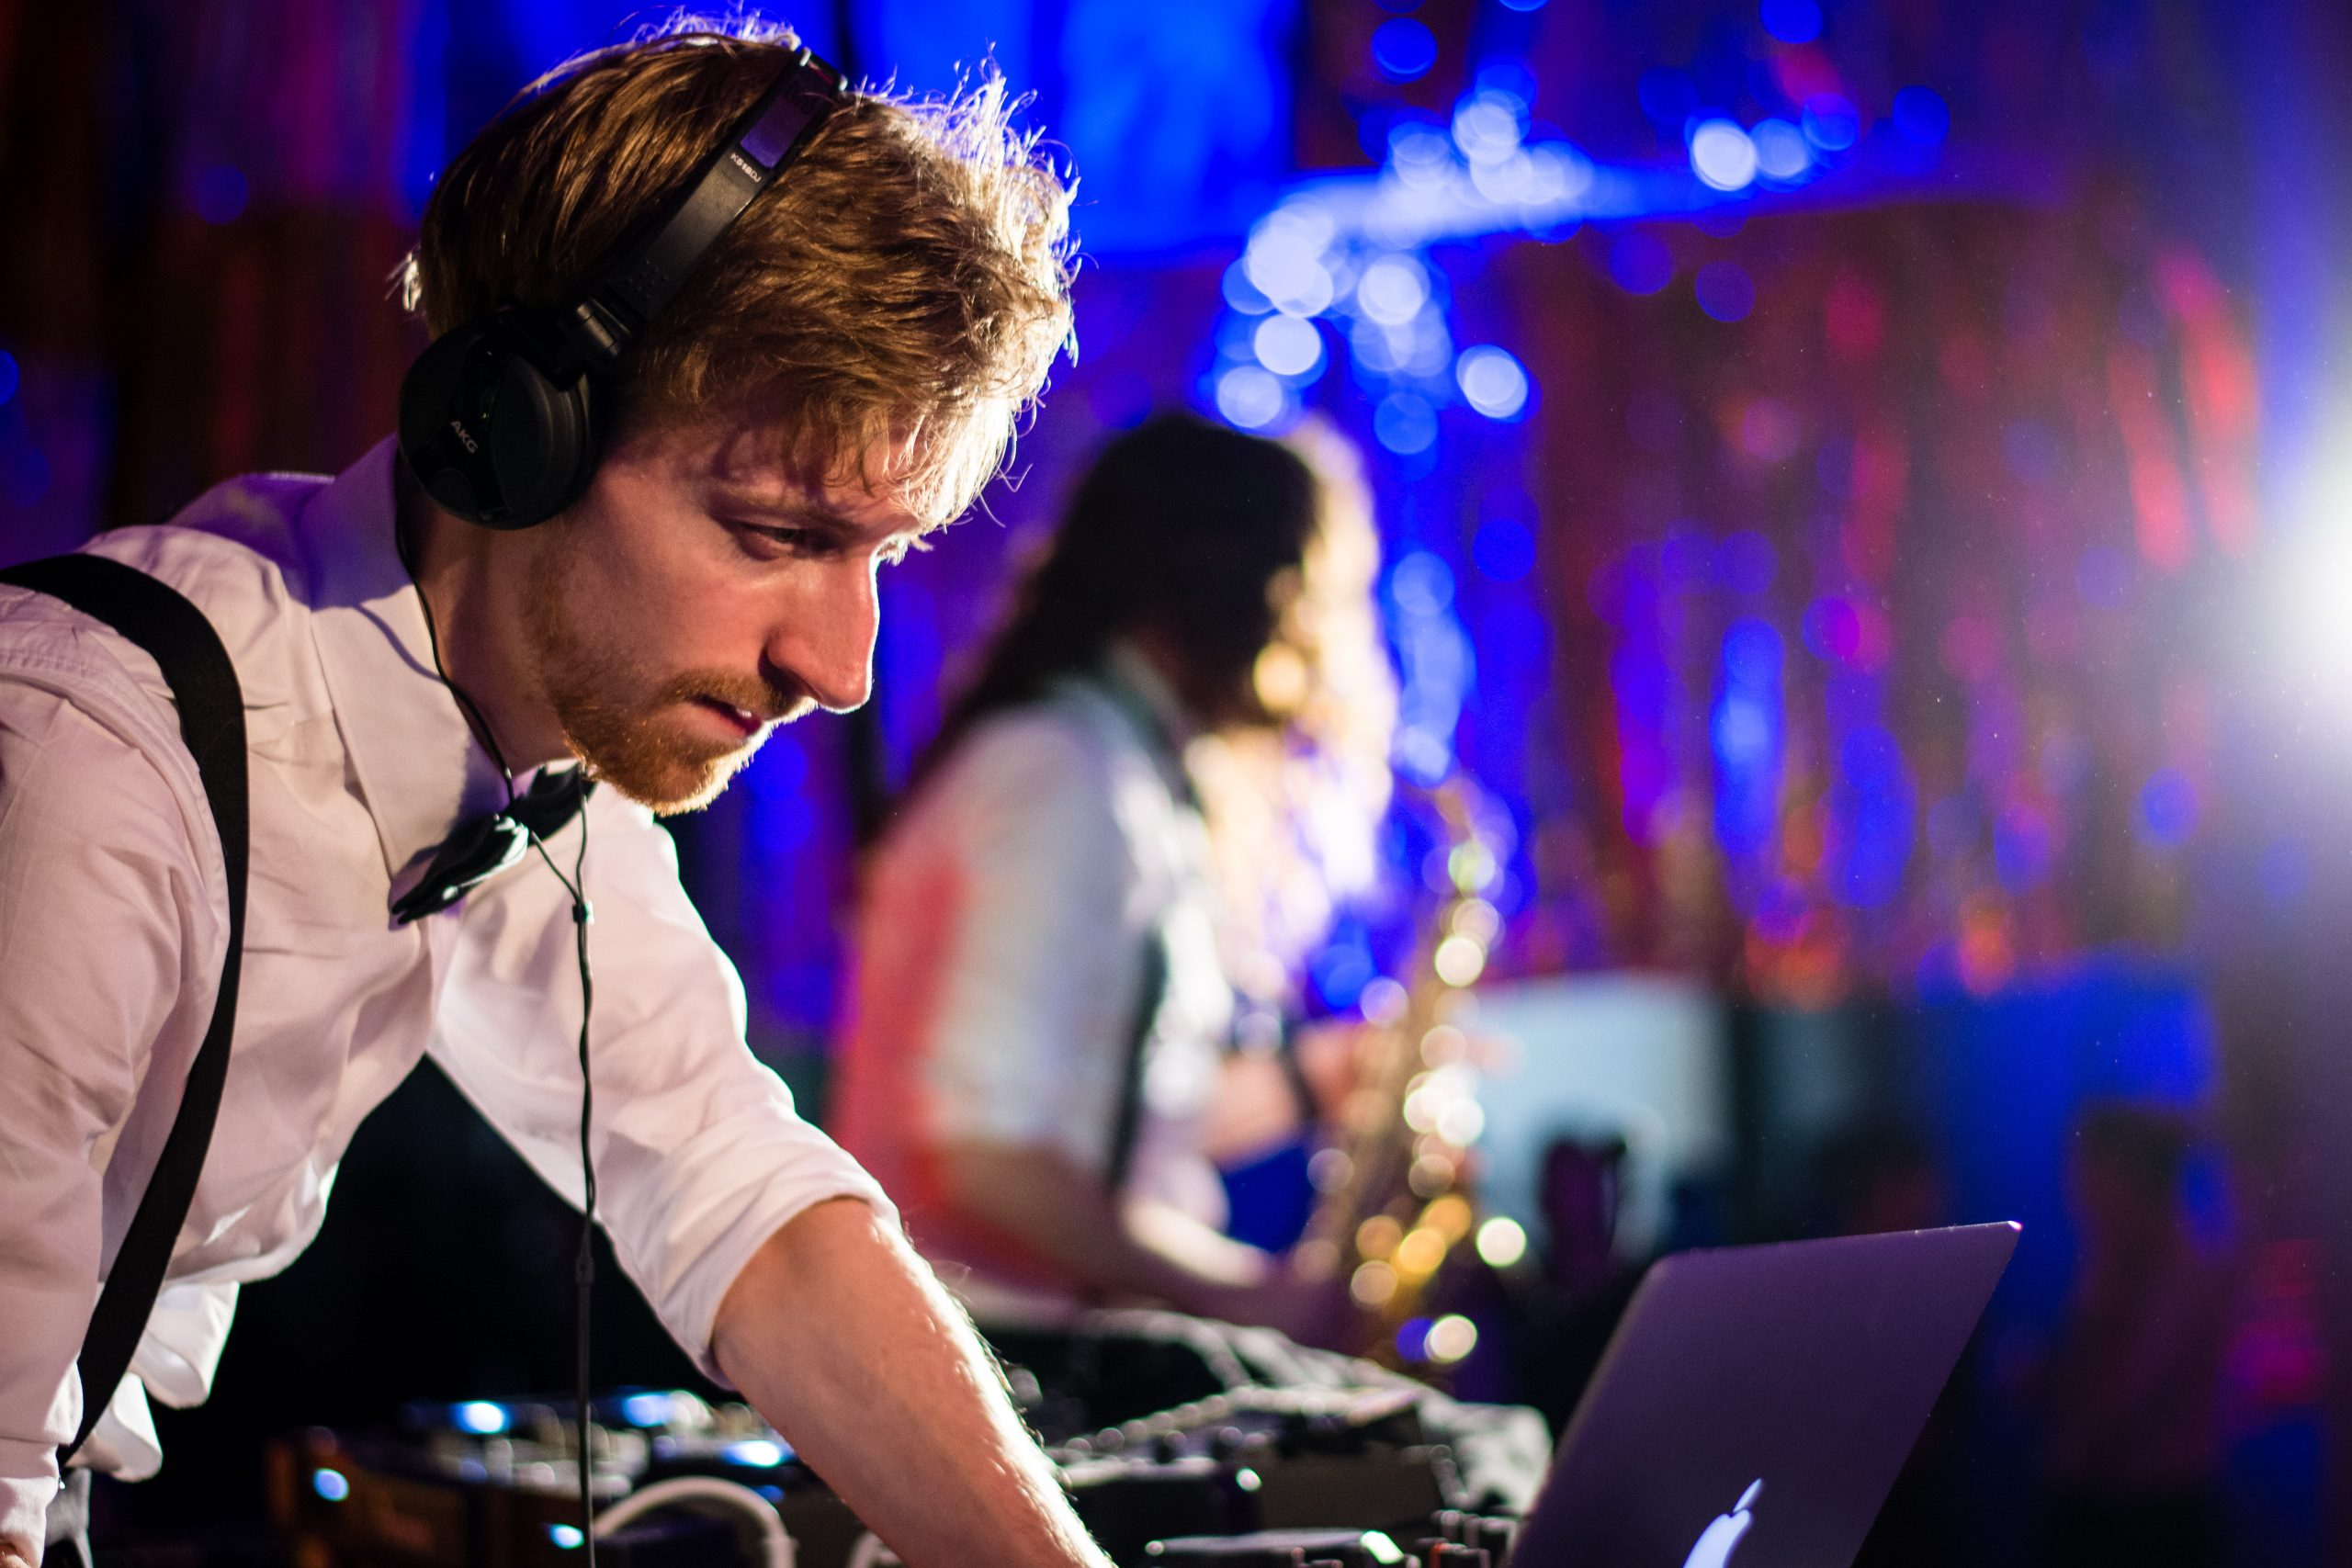 Electro Swing dj Timcat mixing with saxophone player.